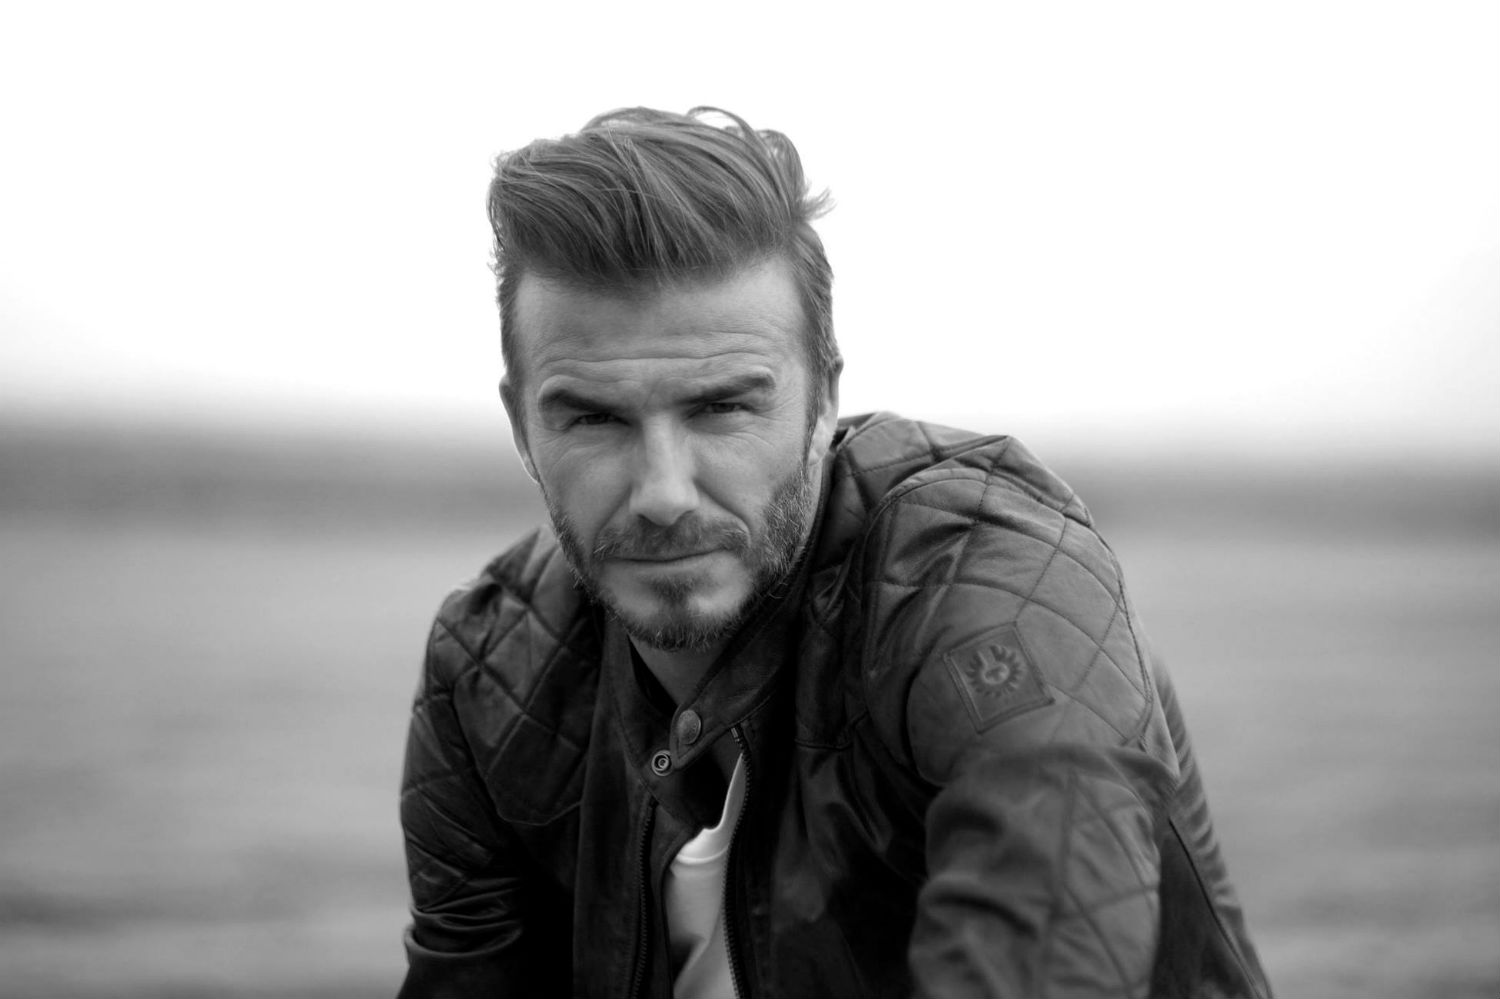 David Beckham refused to be blackmailed over hacked emails